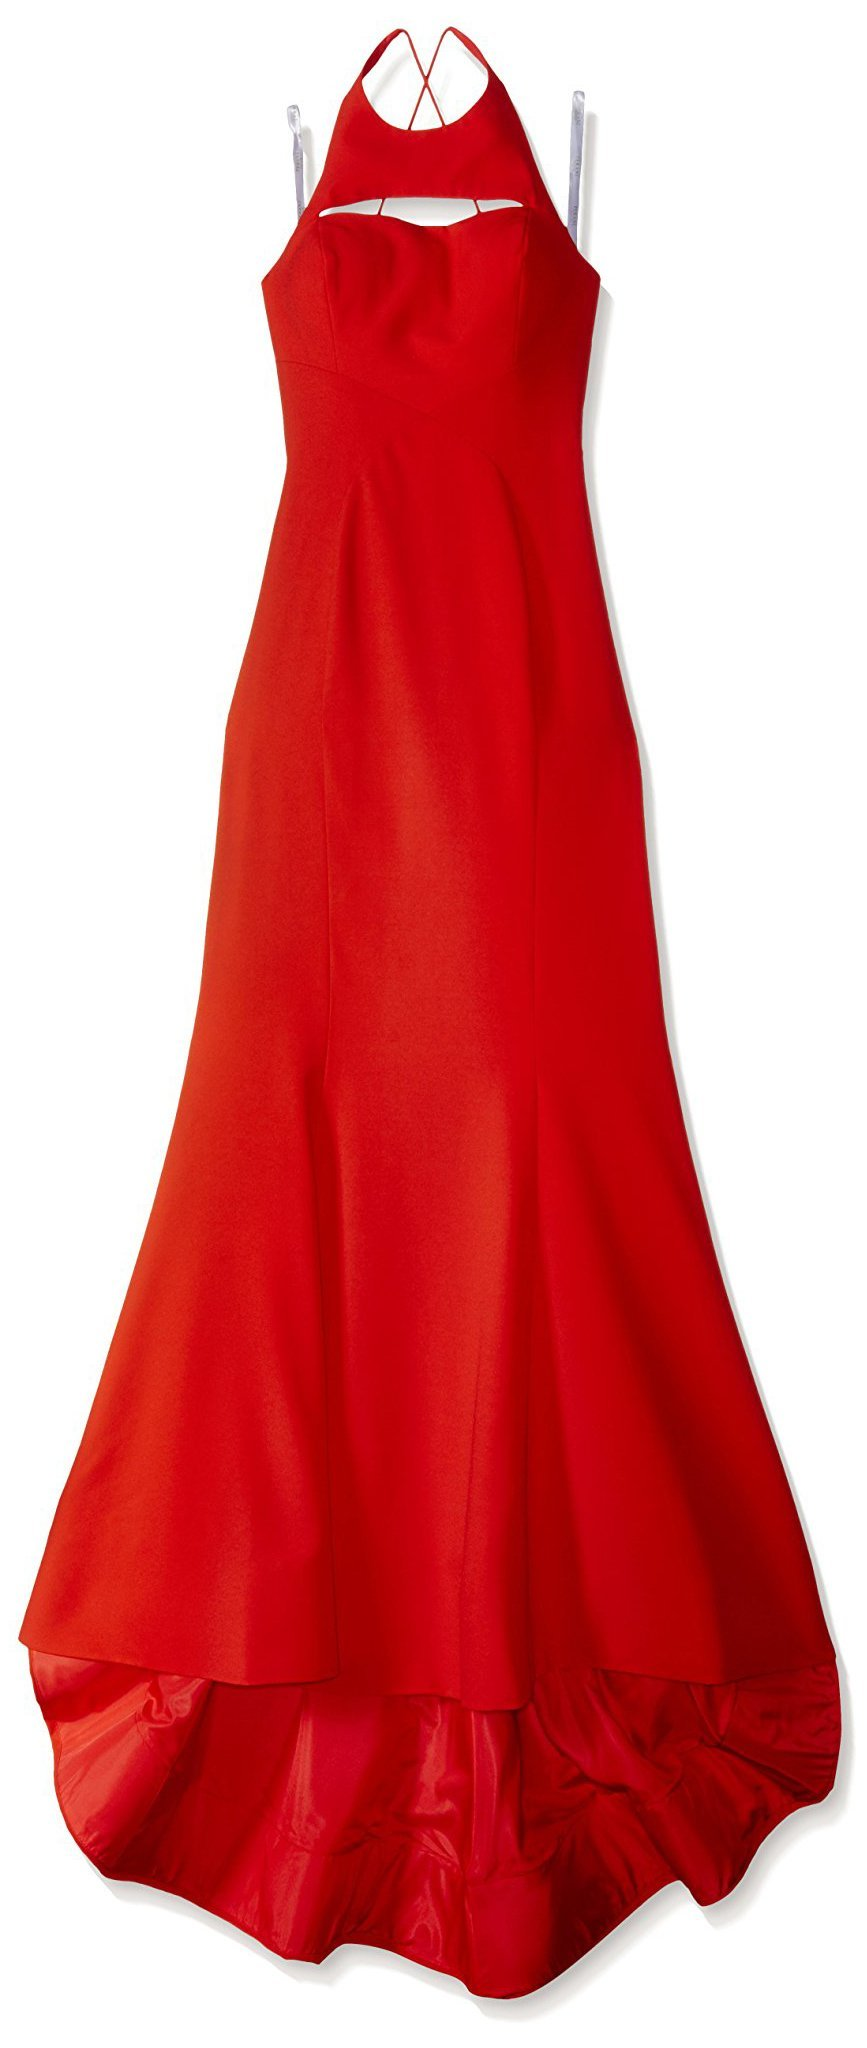 Terani Couture Women's Hourglass Gown, Red, 10